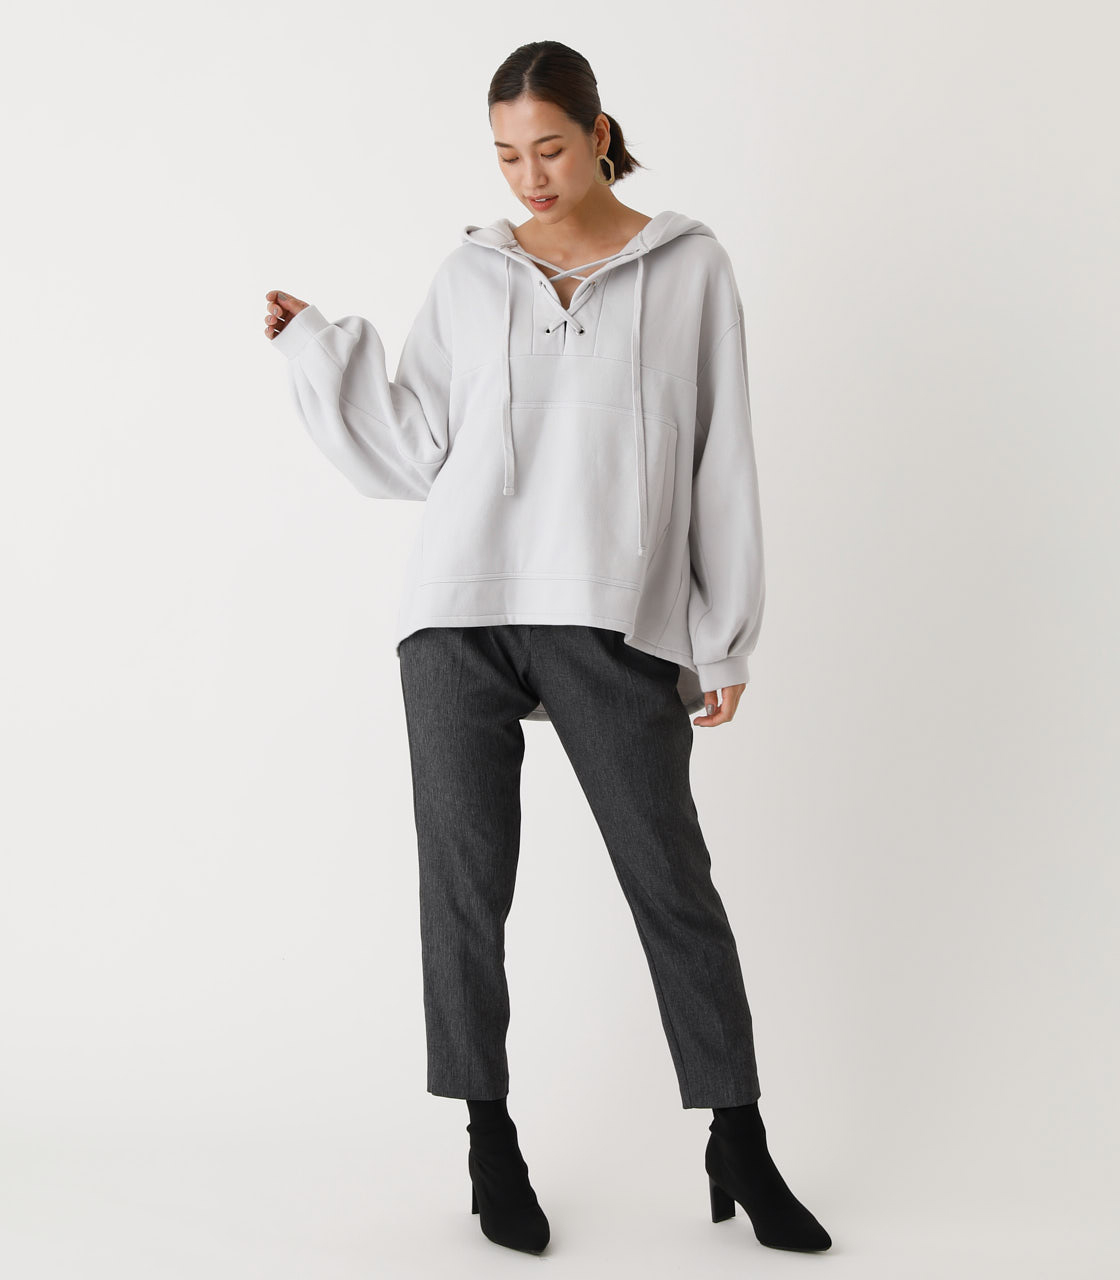 LACE-UP LOOSE HOODIE/レースアップルーズフーディ 詳細画像 L/GRY 3